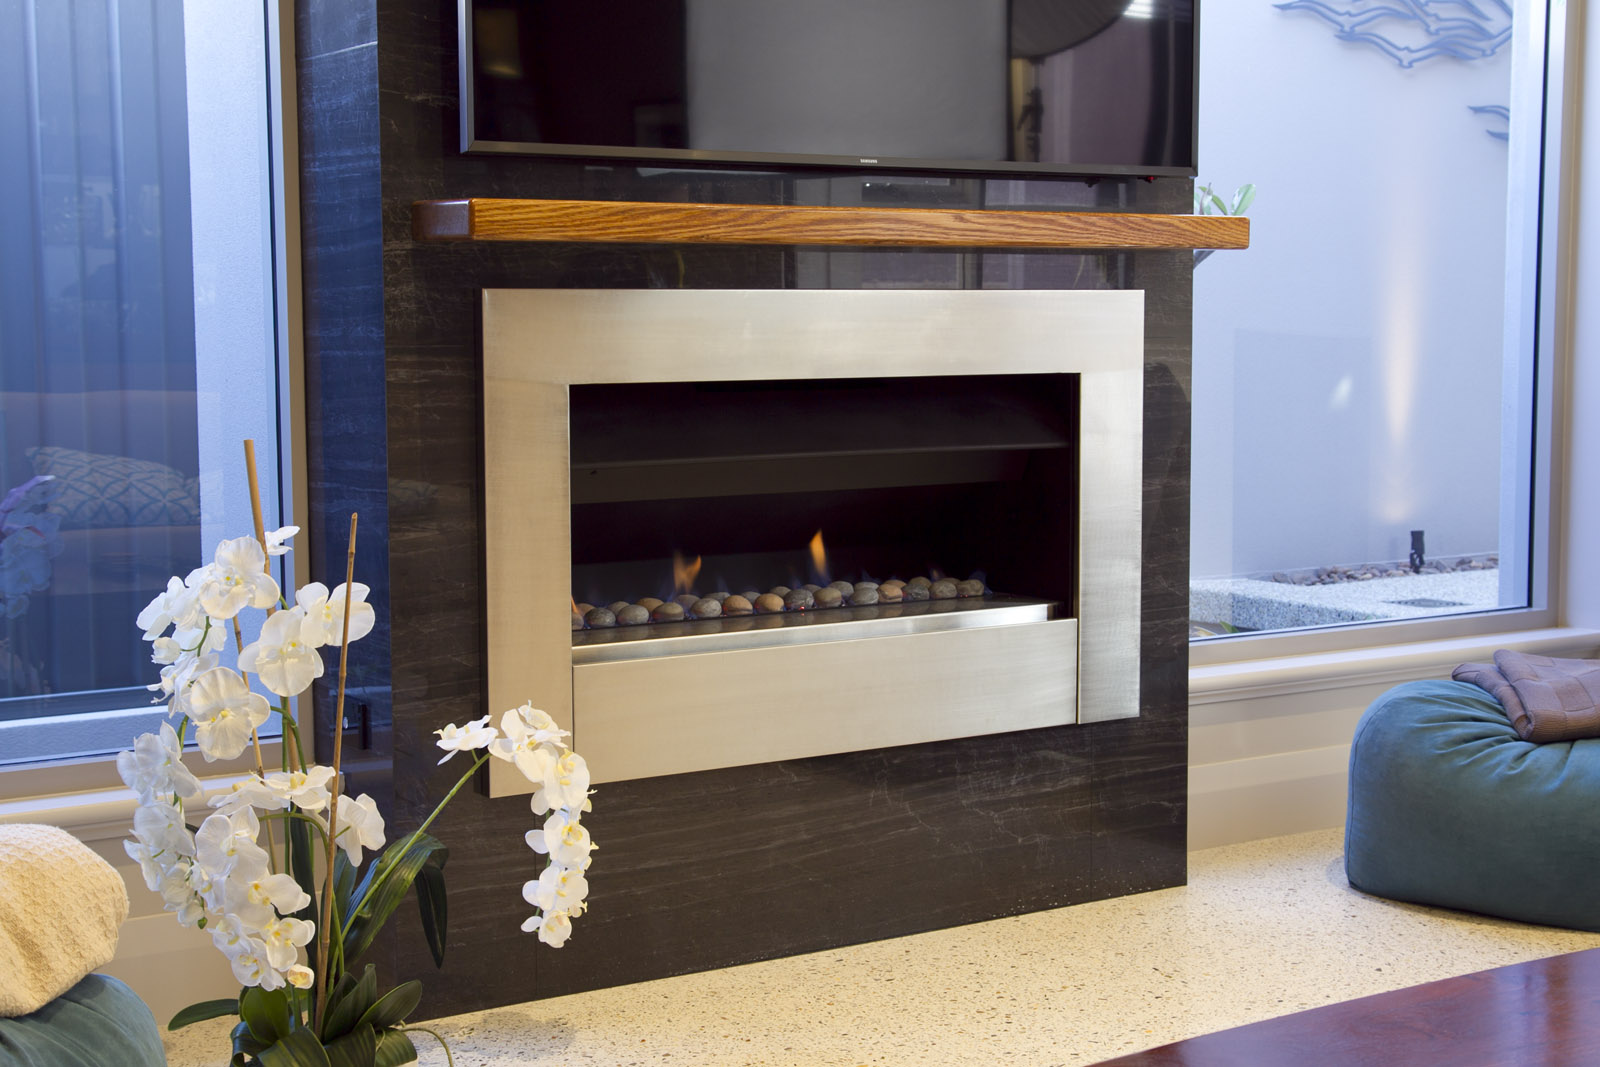 porcelain stone feature-wall surrounding stainless steel fireplace